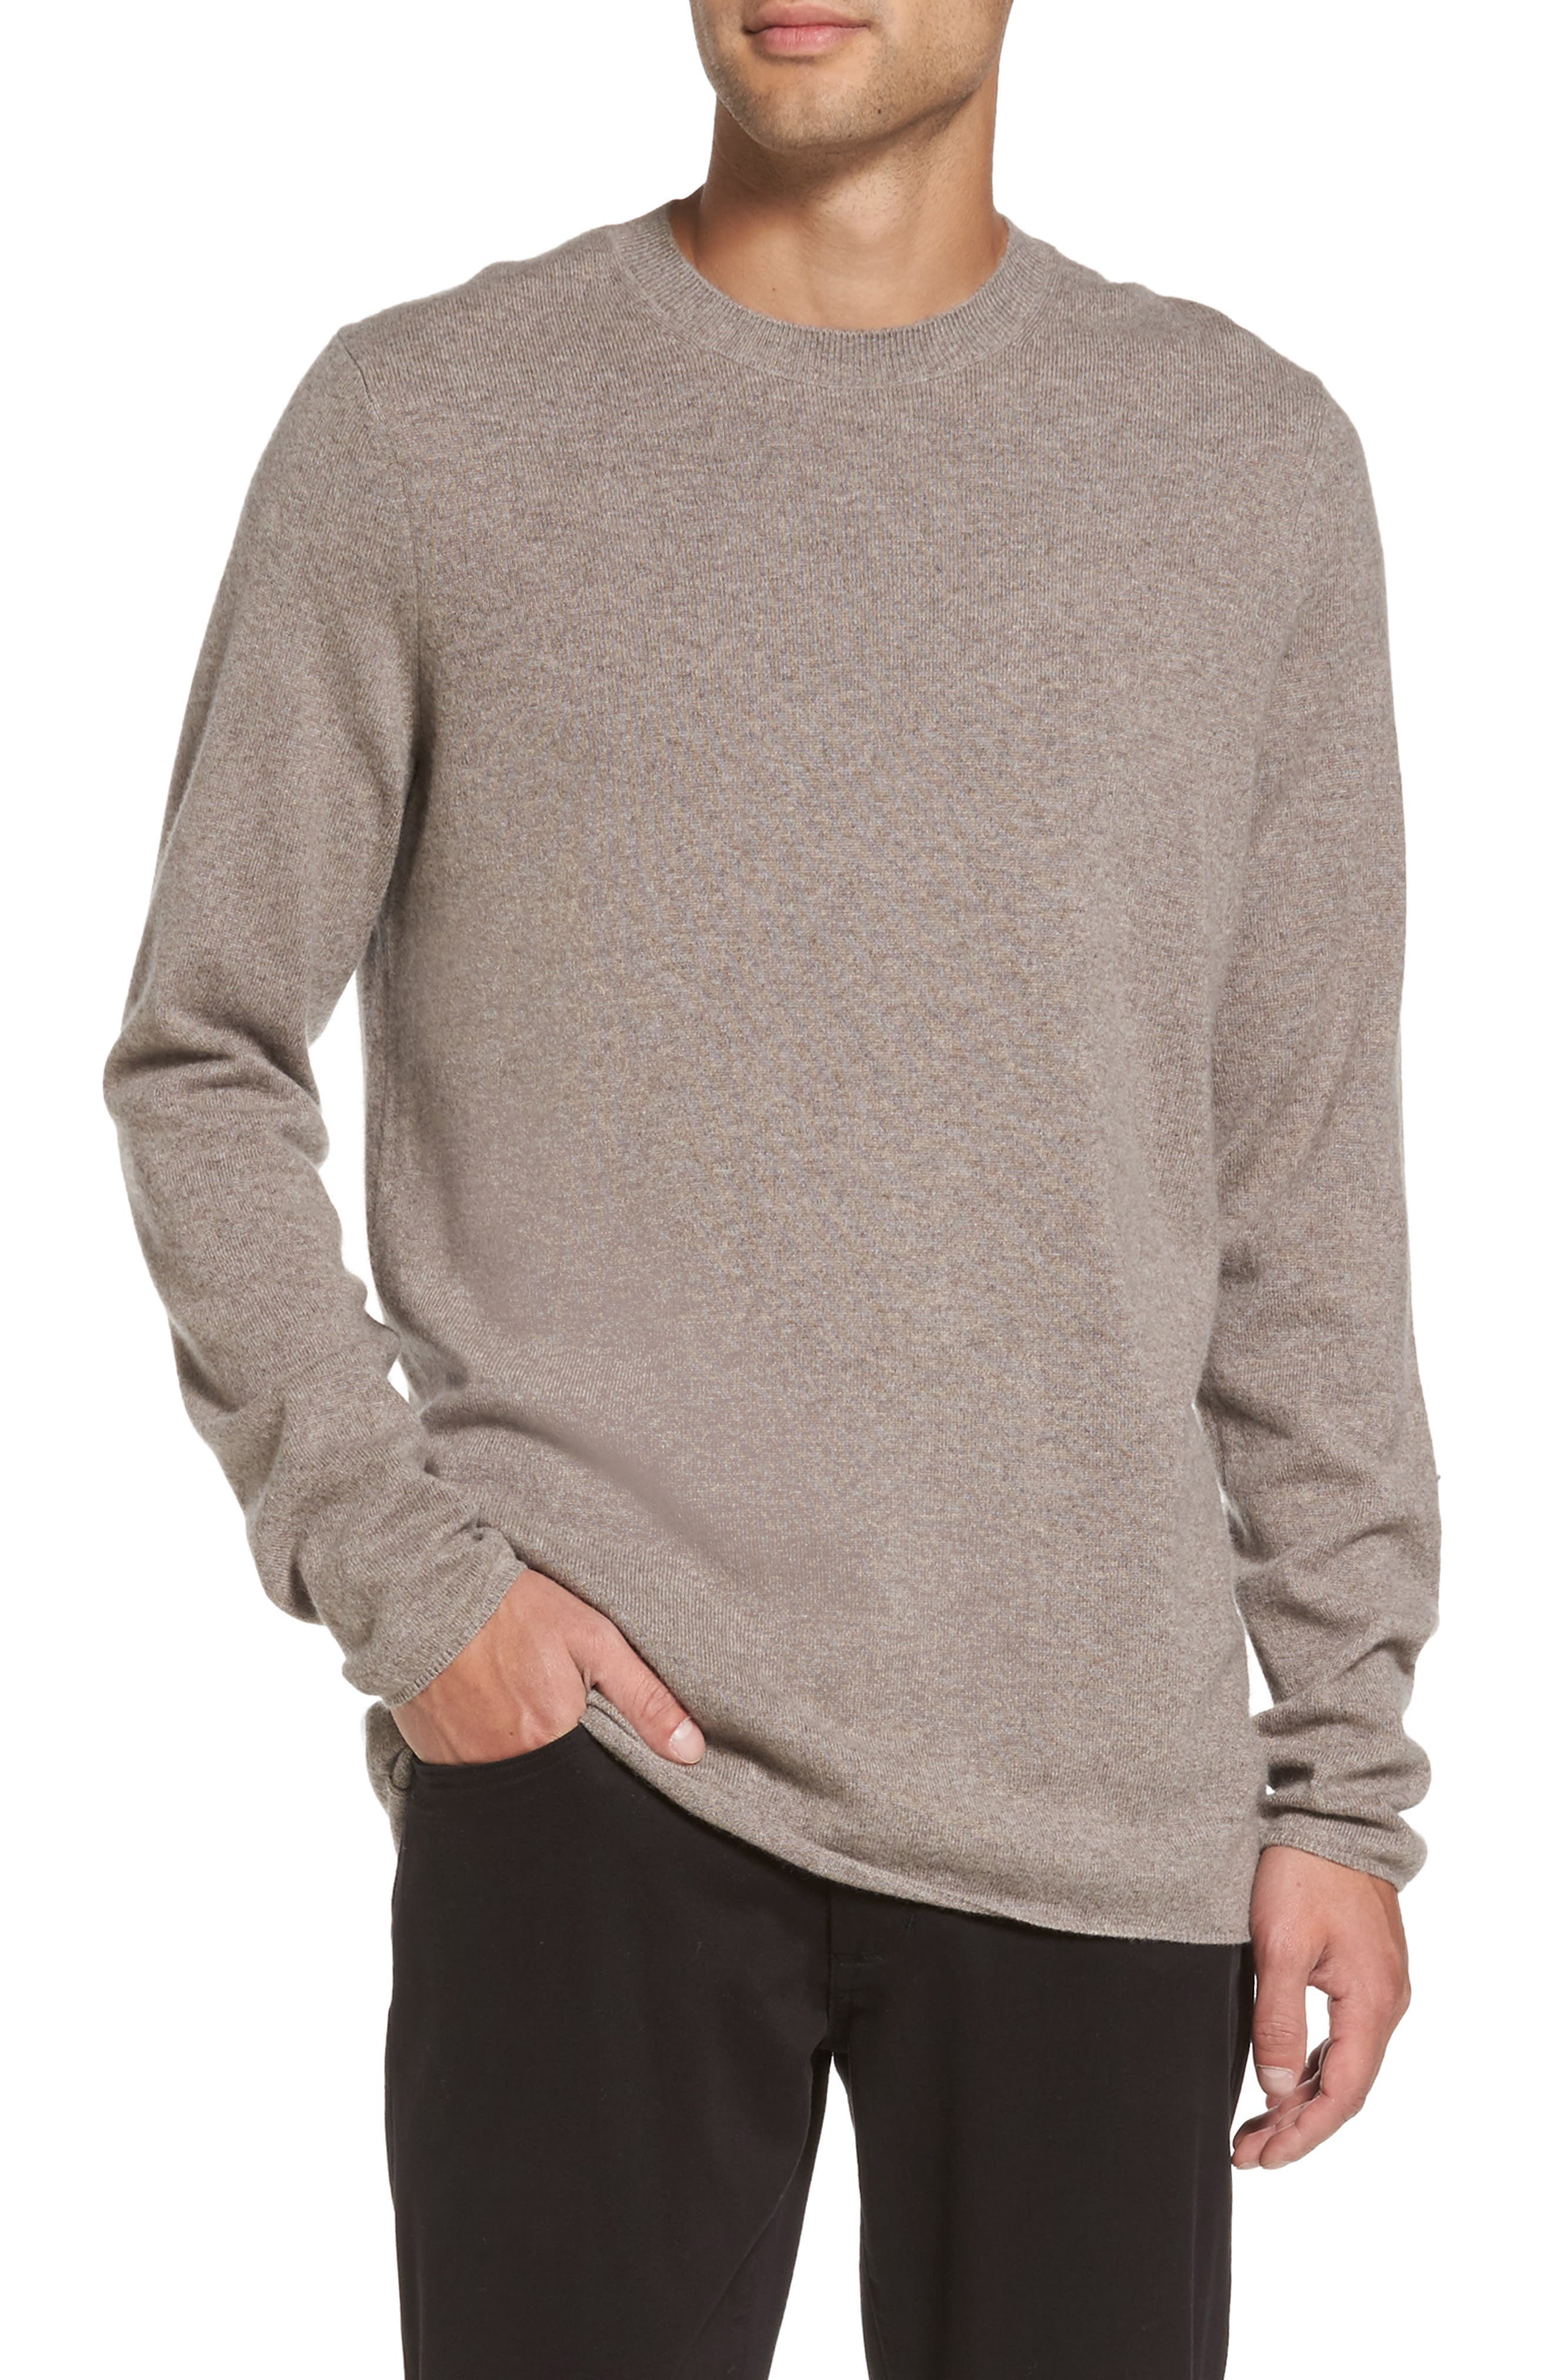 Regular Fit Crewneck Sweater,                             Main thumbnail 1, color,                             281